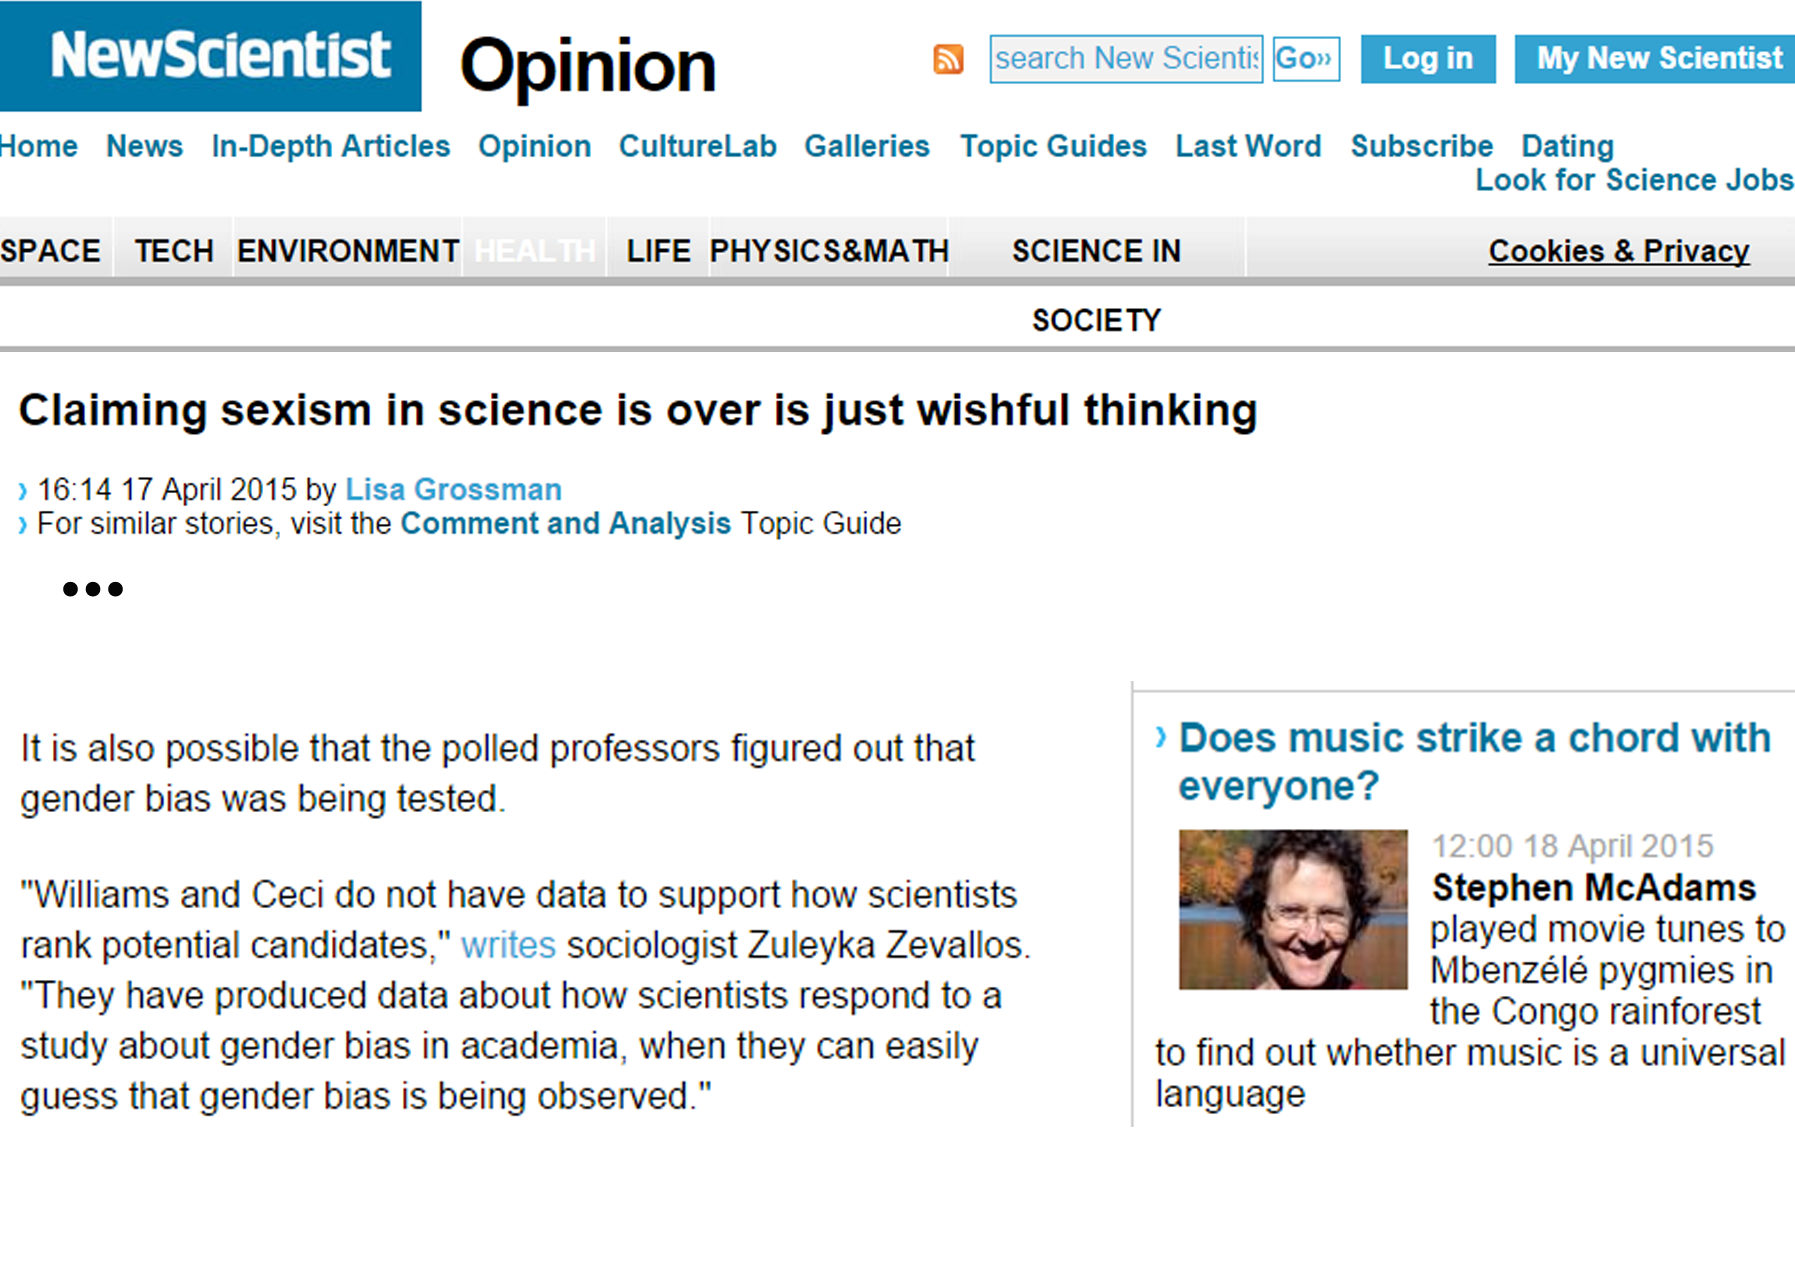 New Scientist Claiming sexism in science is over is just wishful thinking